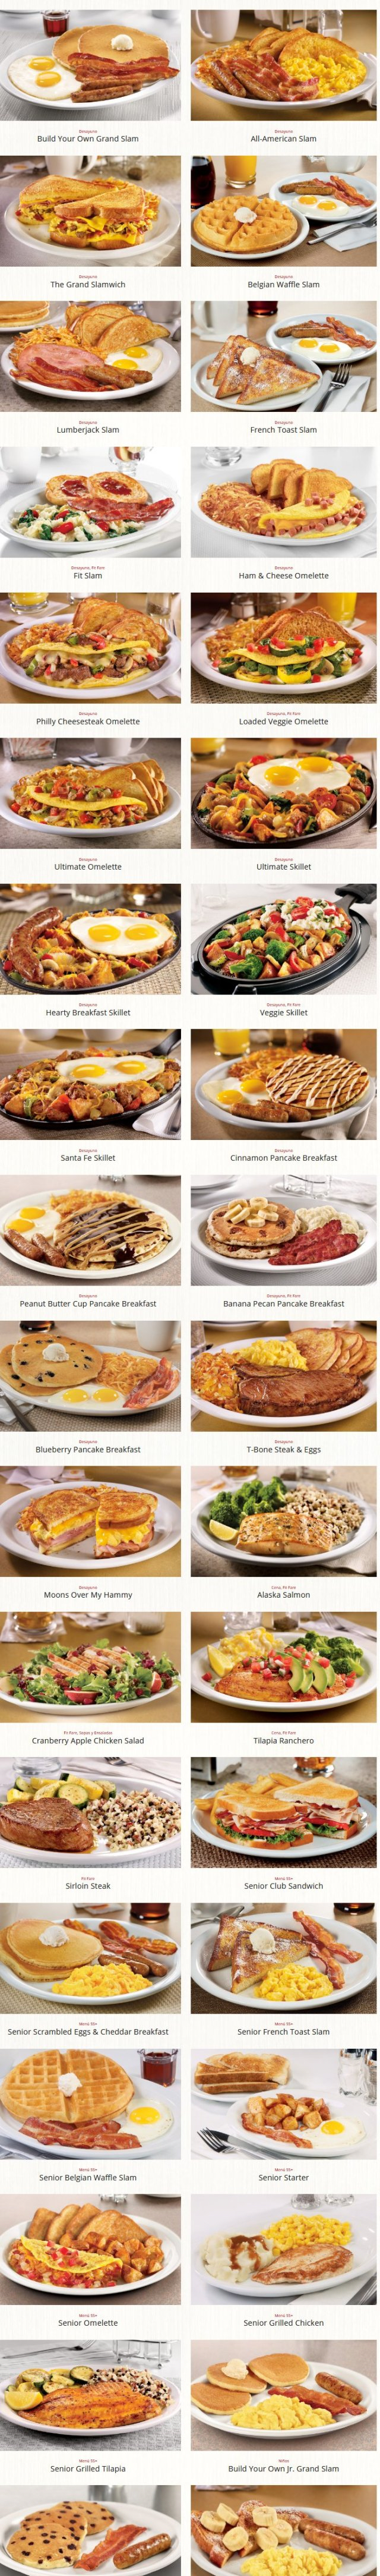 Denny's entrees